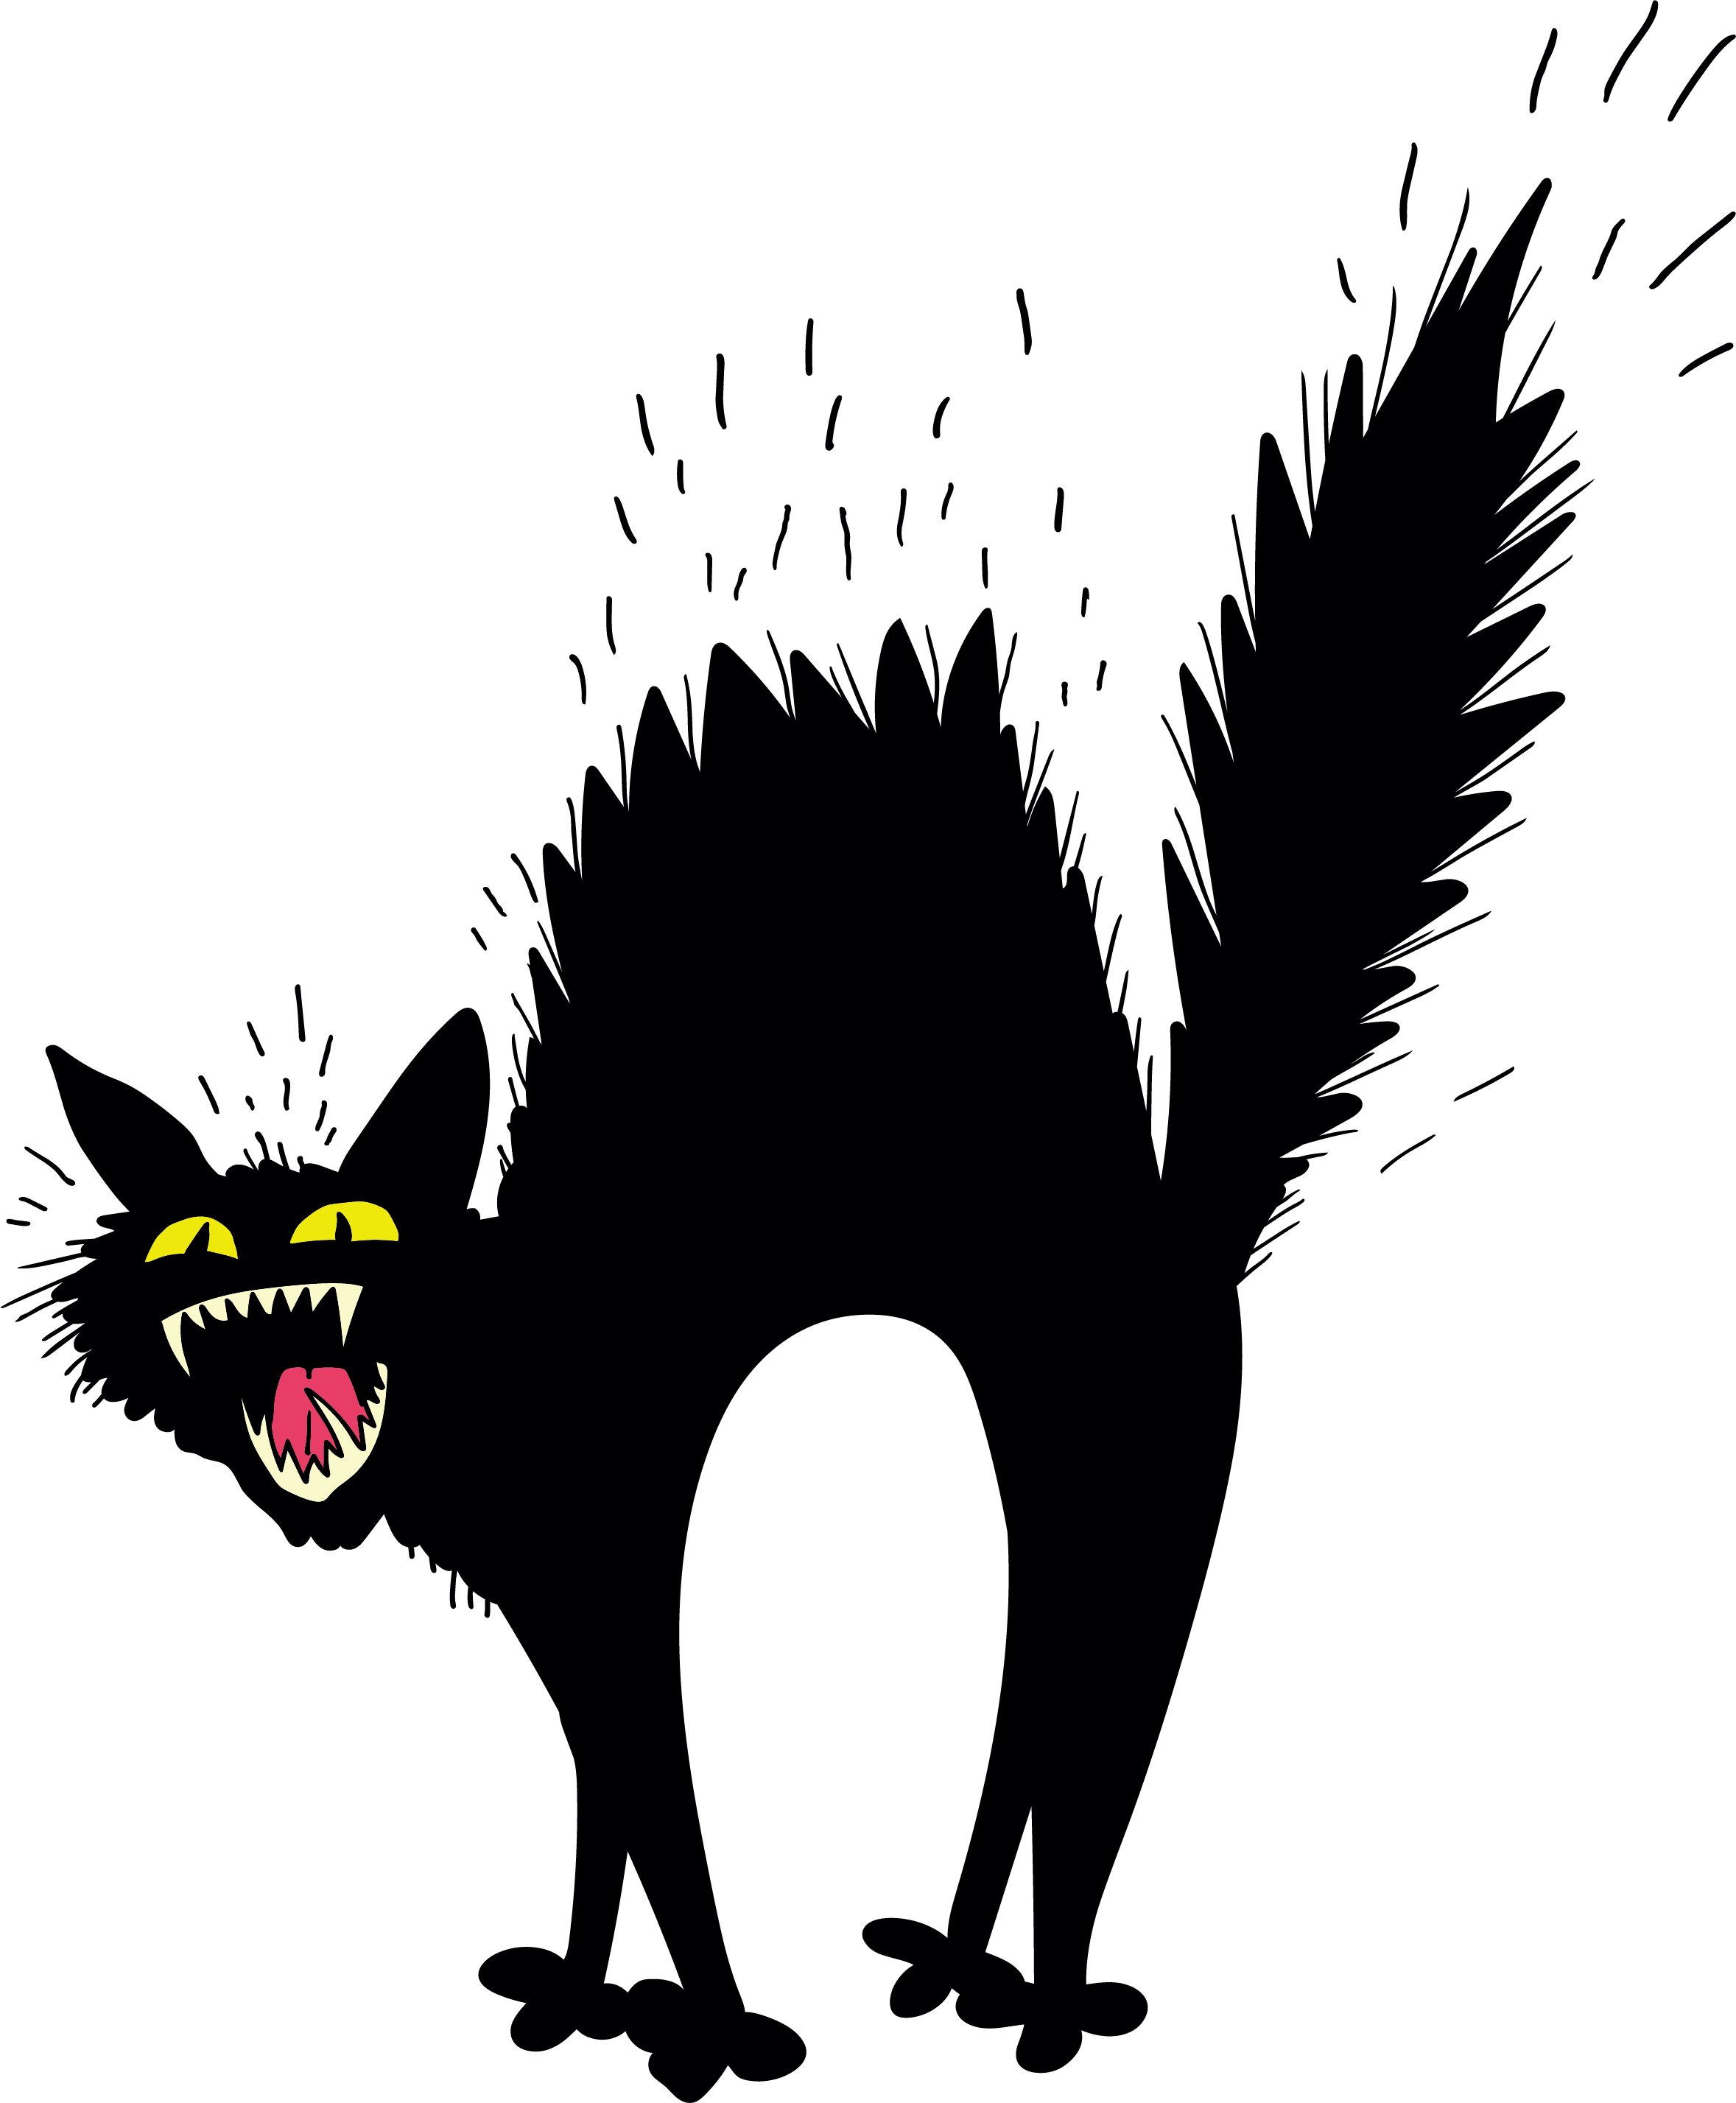 Scary black cat png download.